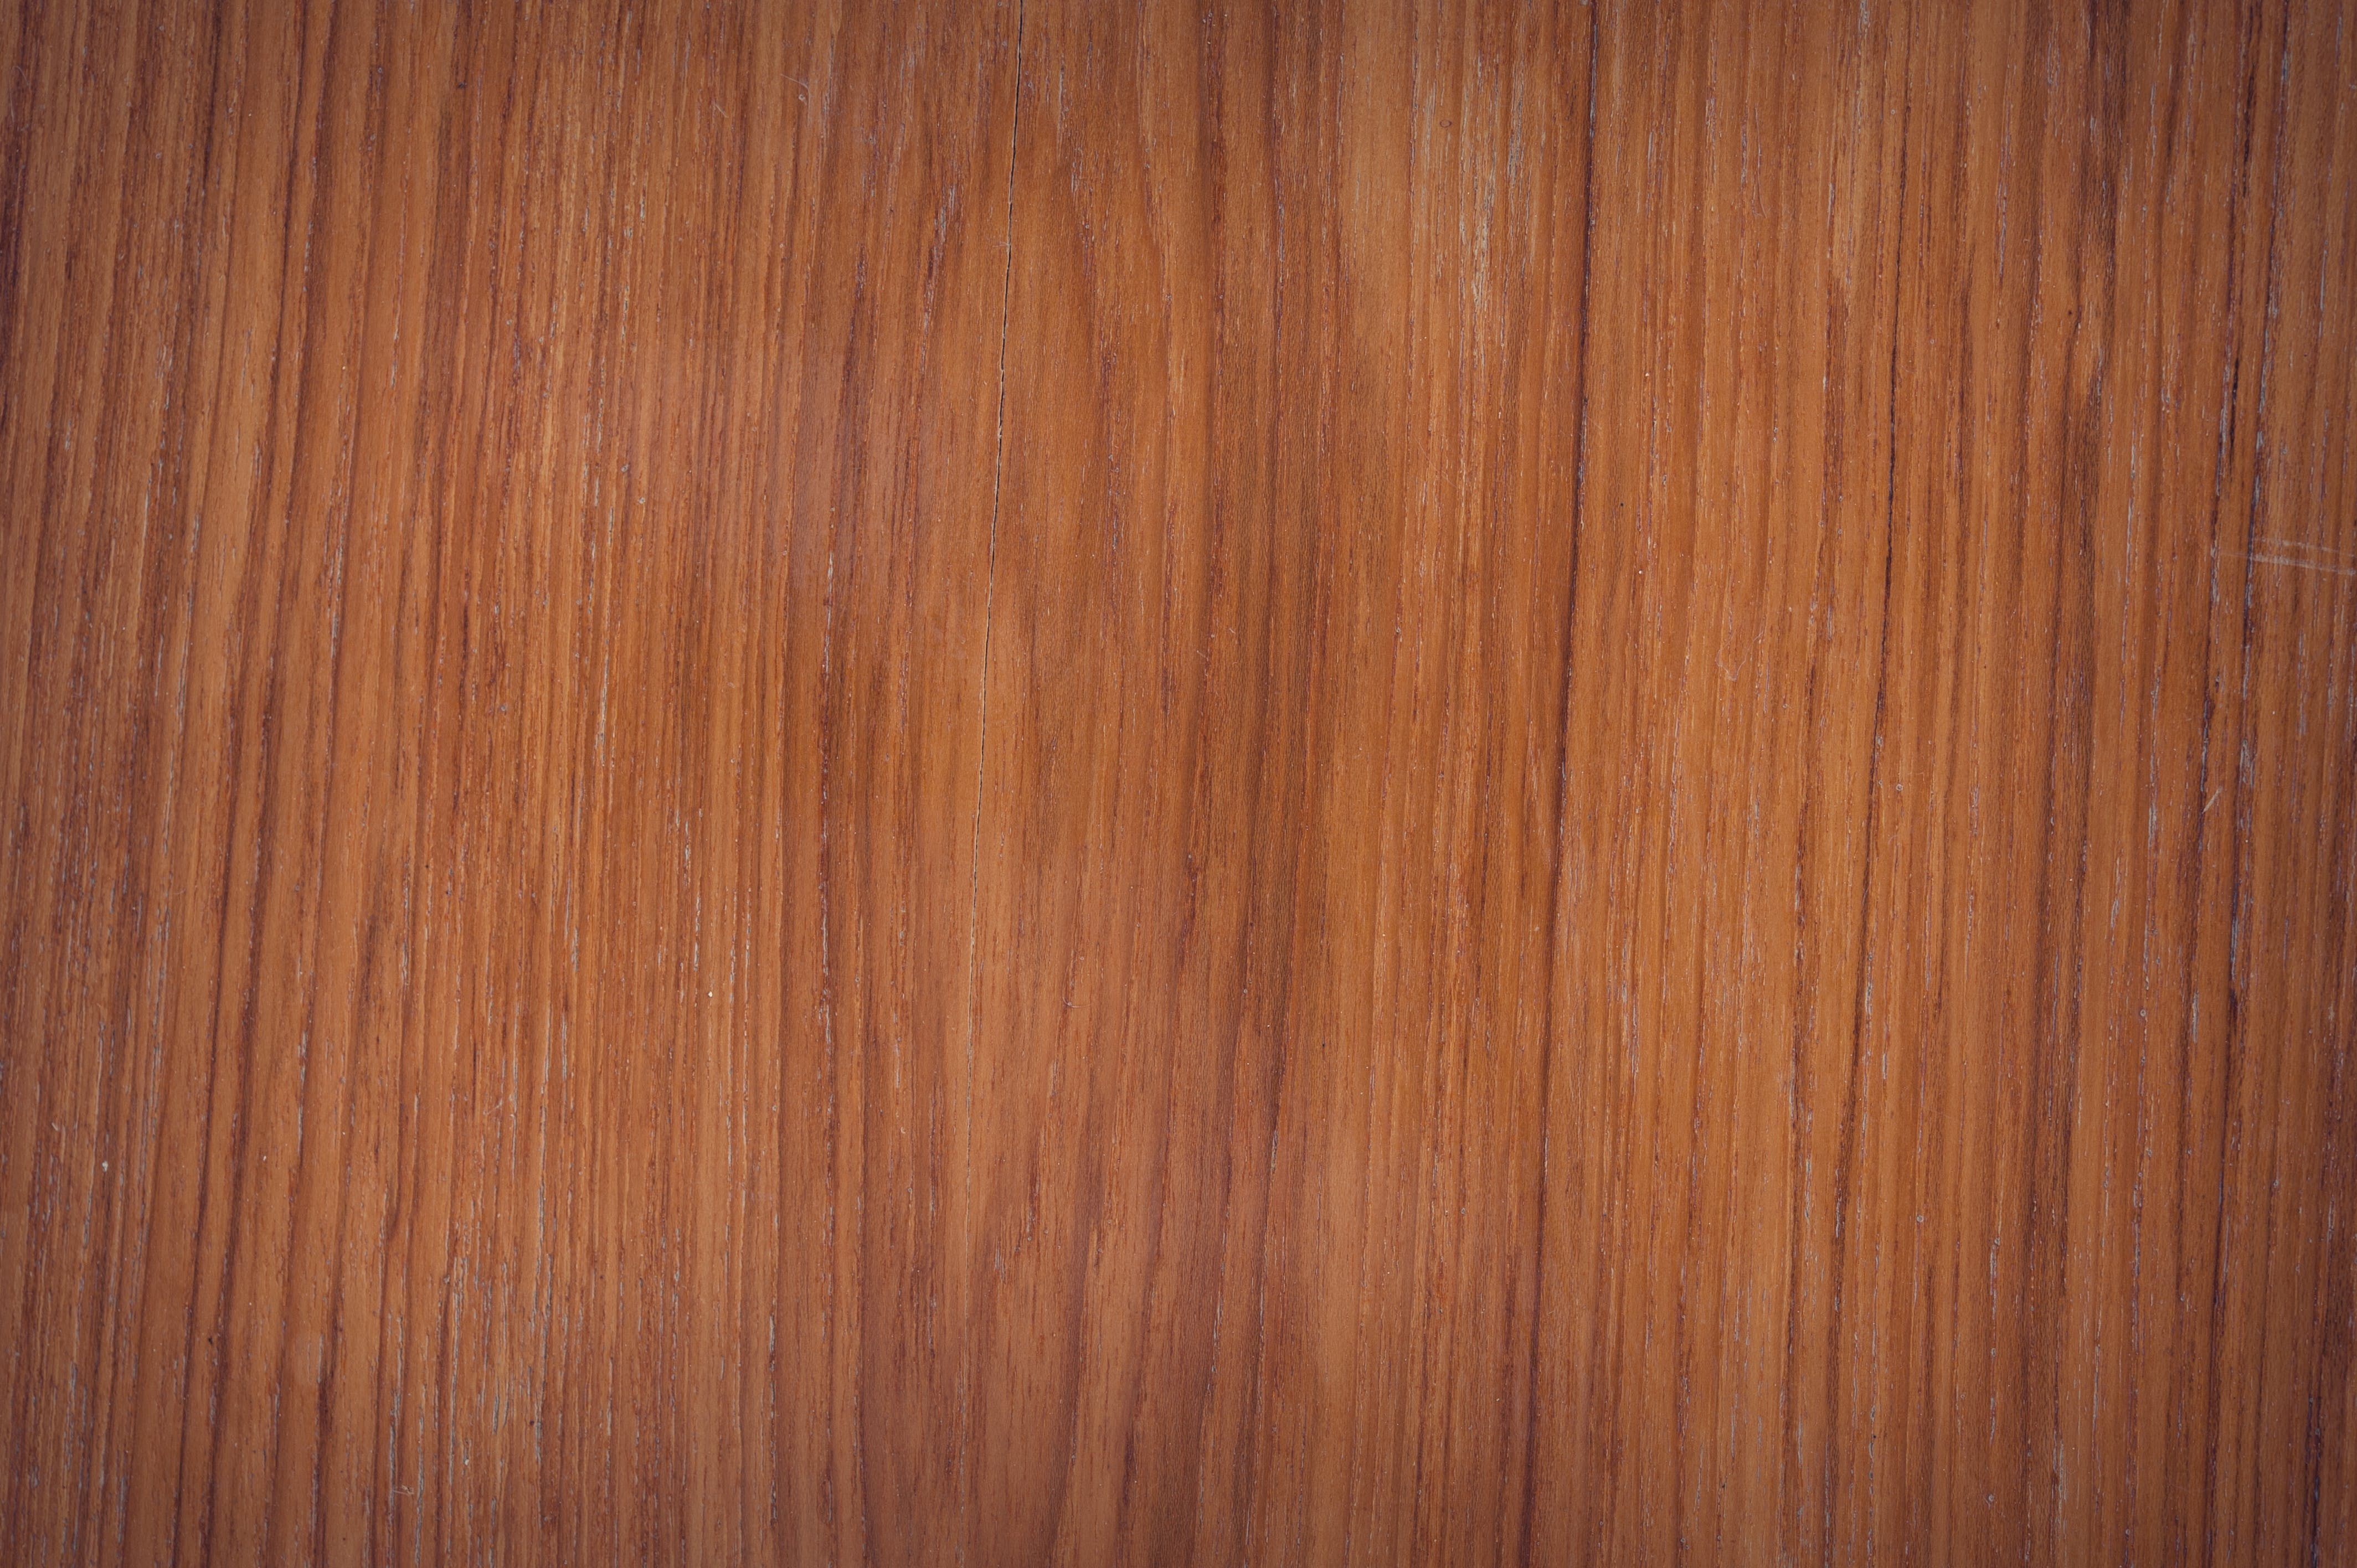 wood table texture. Free Stock Photo Of Wood, Red, Dark, Building Wood Table Texture N